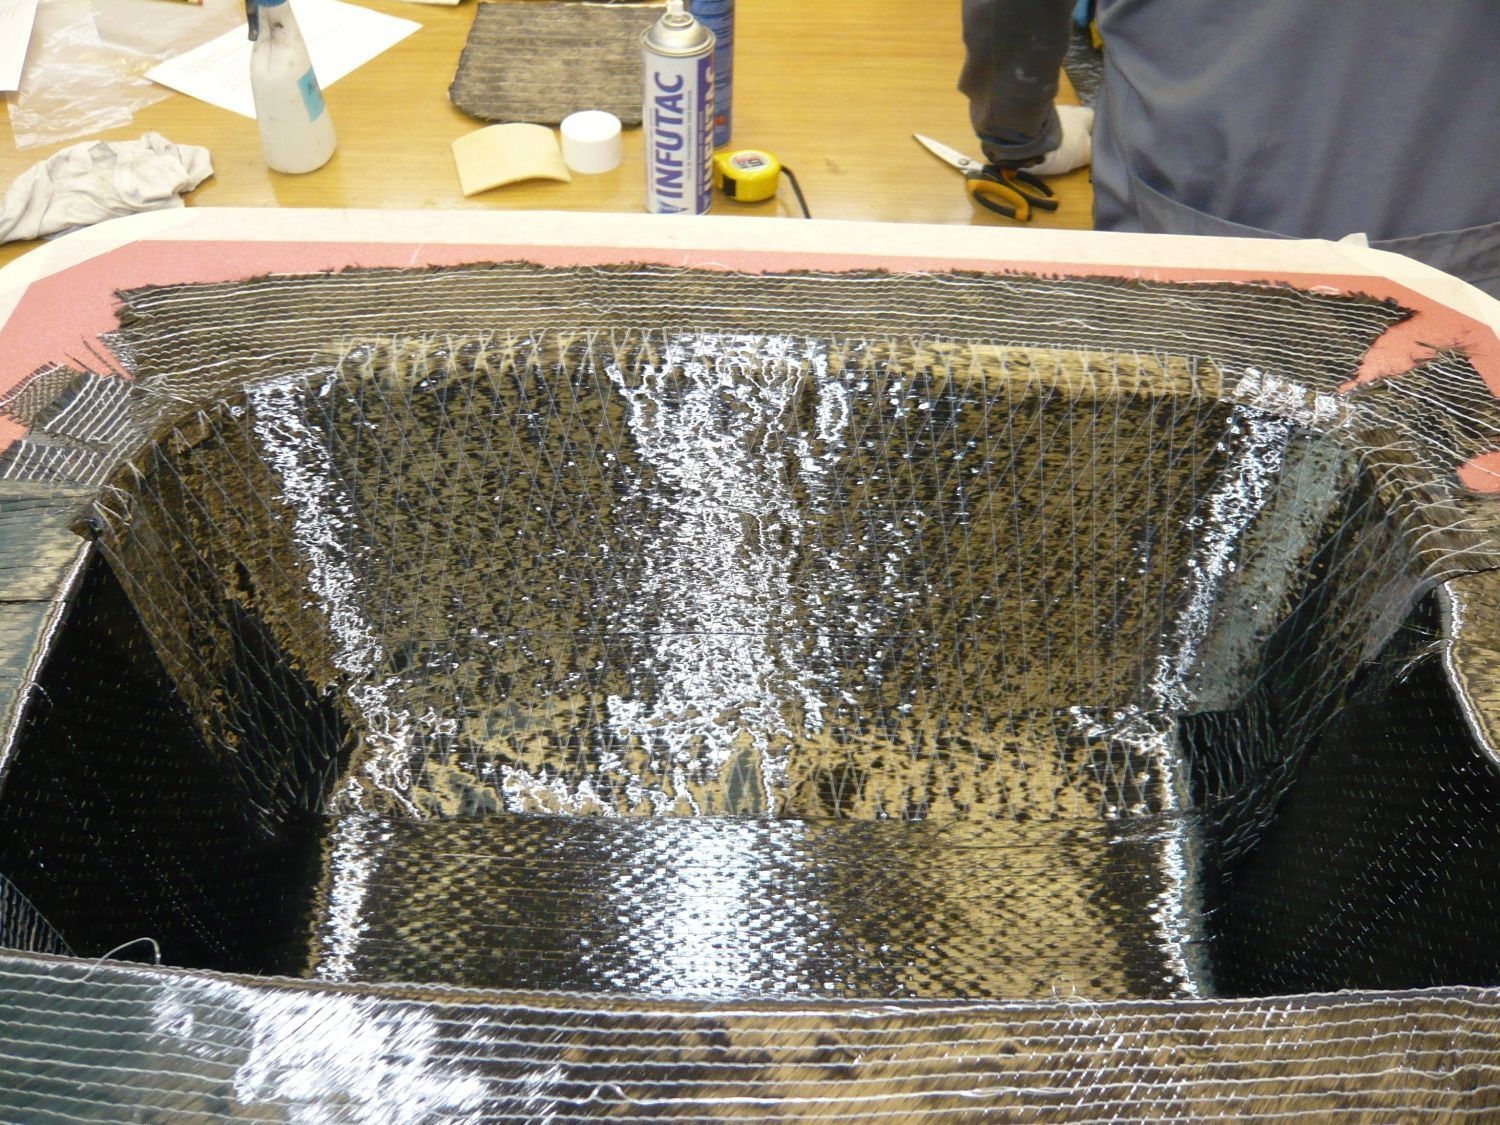 Laying the last carbon layers